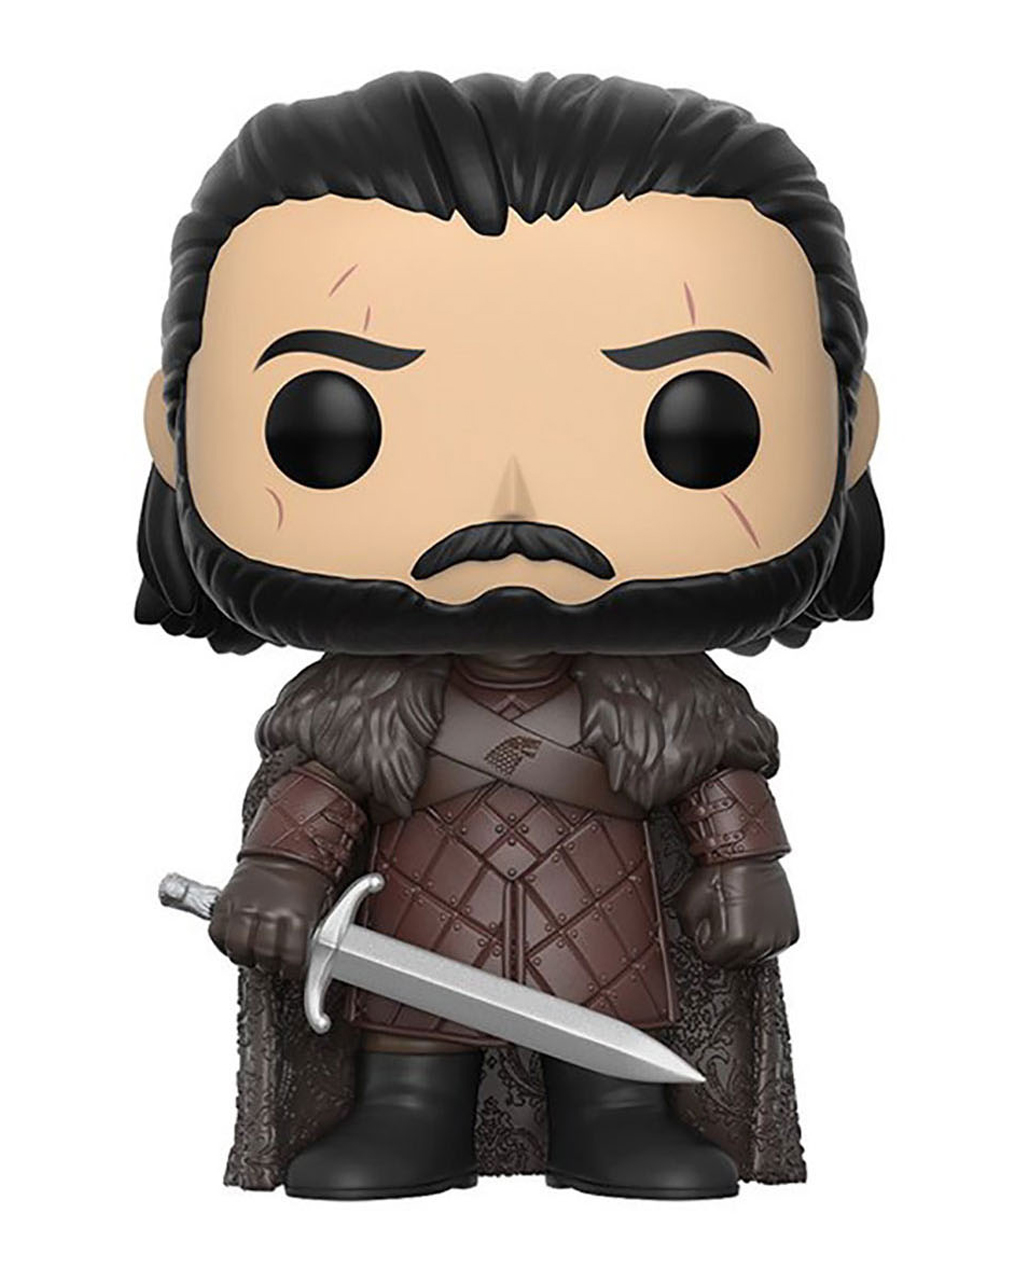 game of thrones jon snow funko pop figur kaufen horror. Black Bedroom Furniture Sets. Home Design Ideas